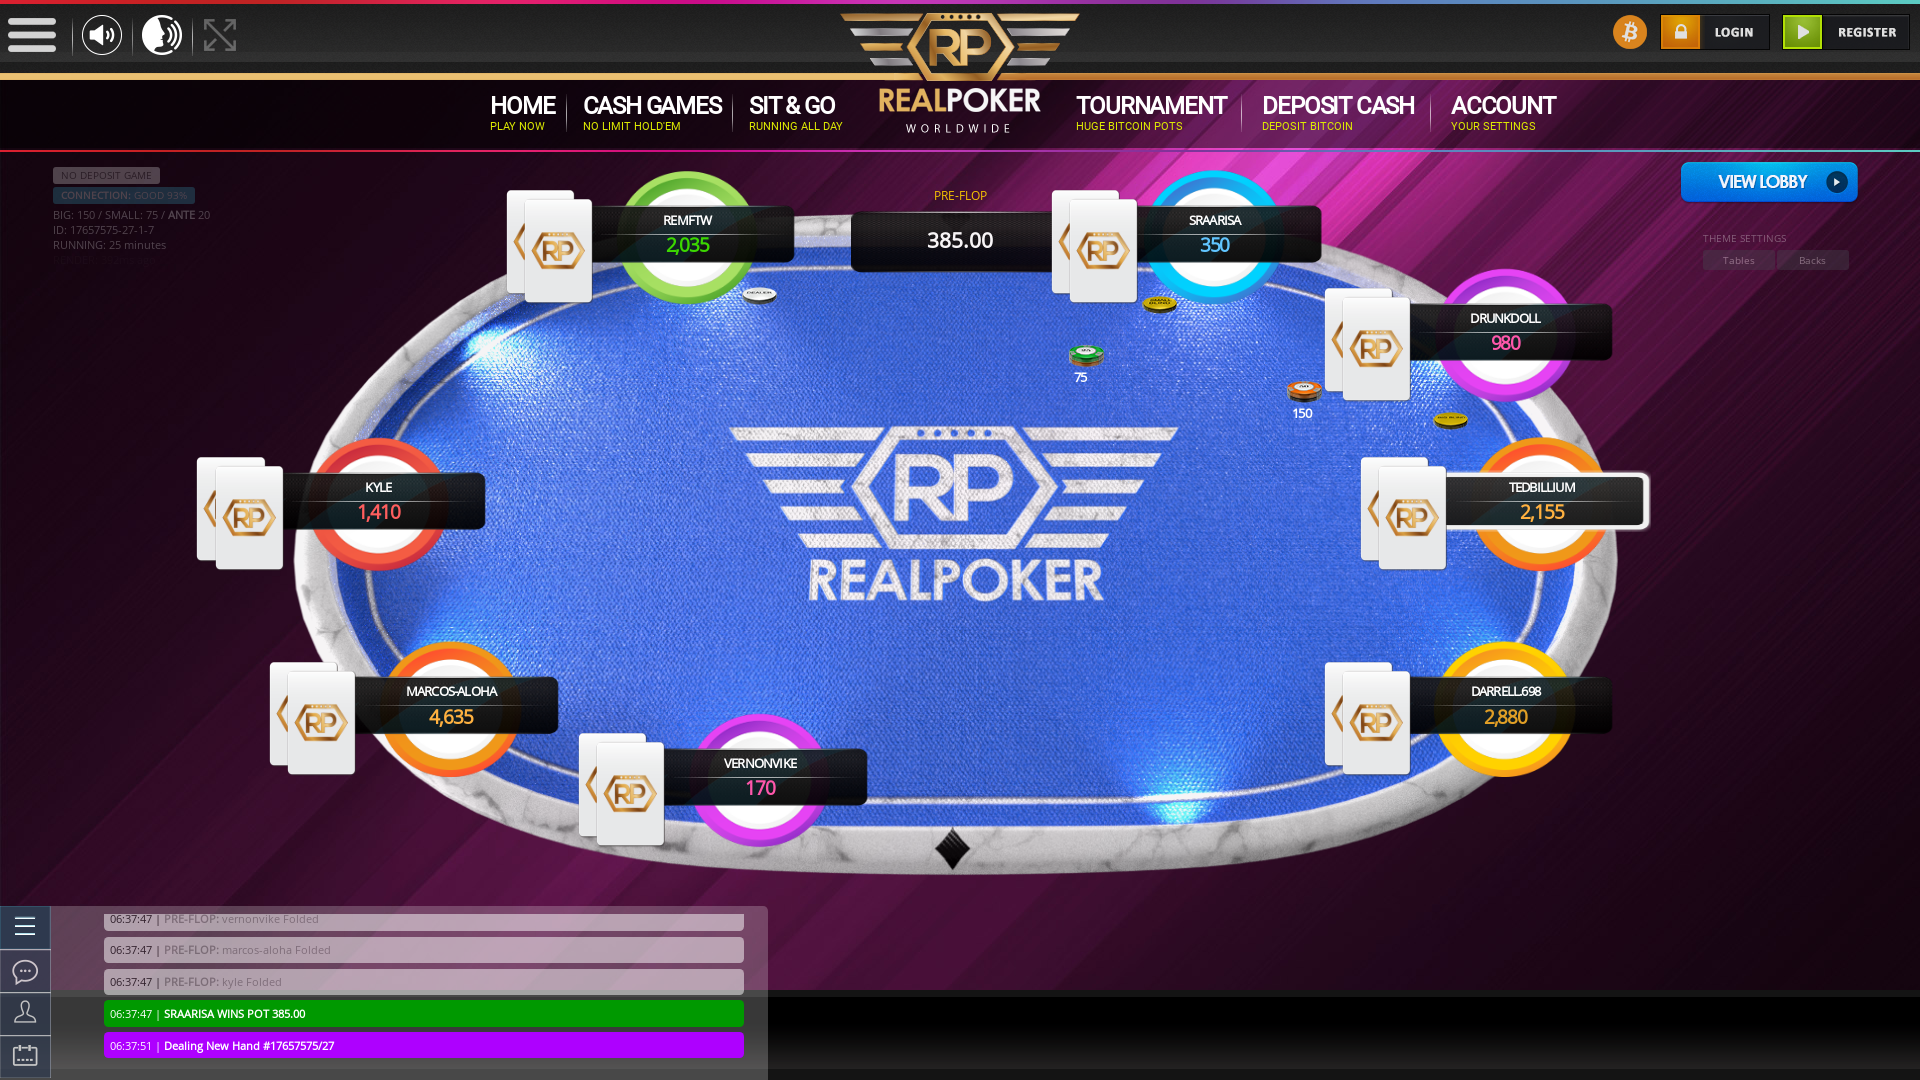 Albania texas holdem poker table on a 10 player table in the 25th minute